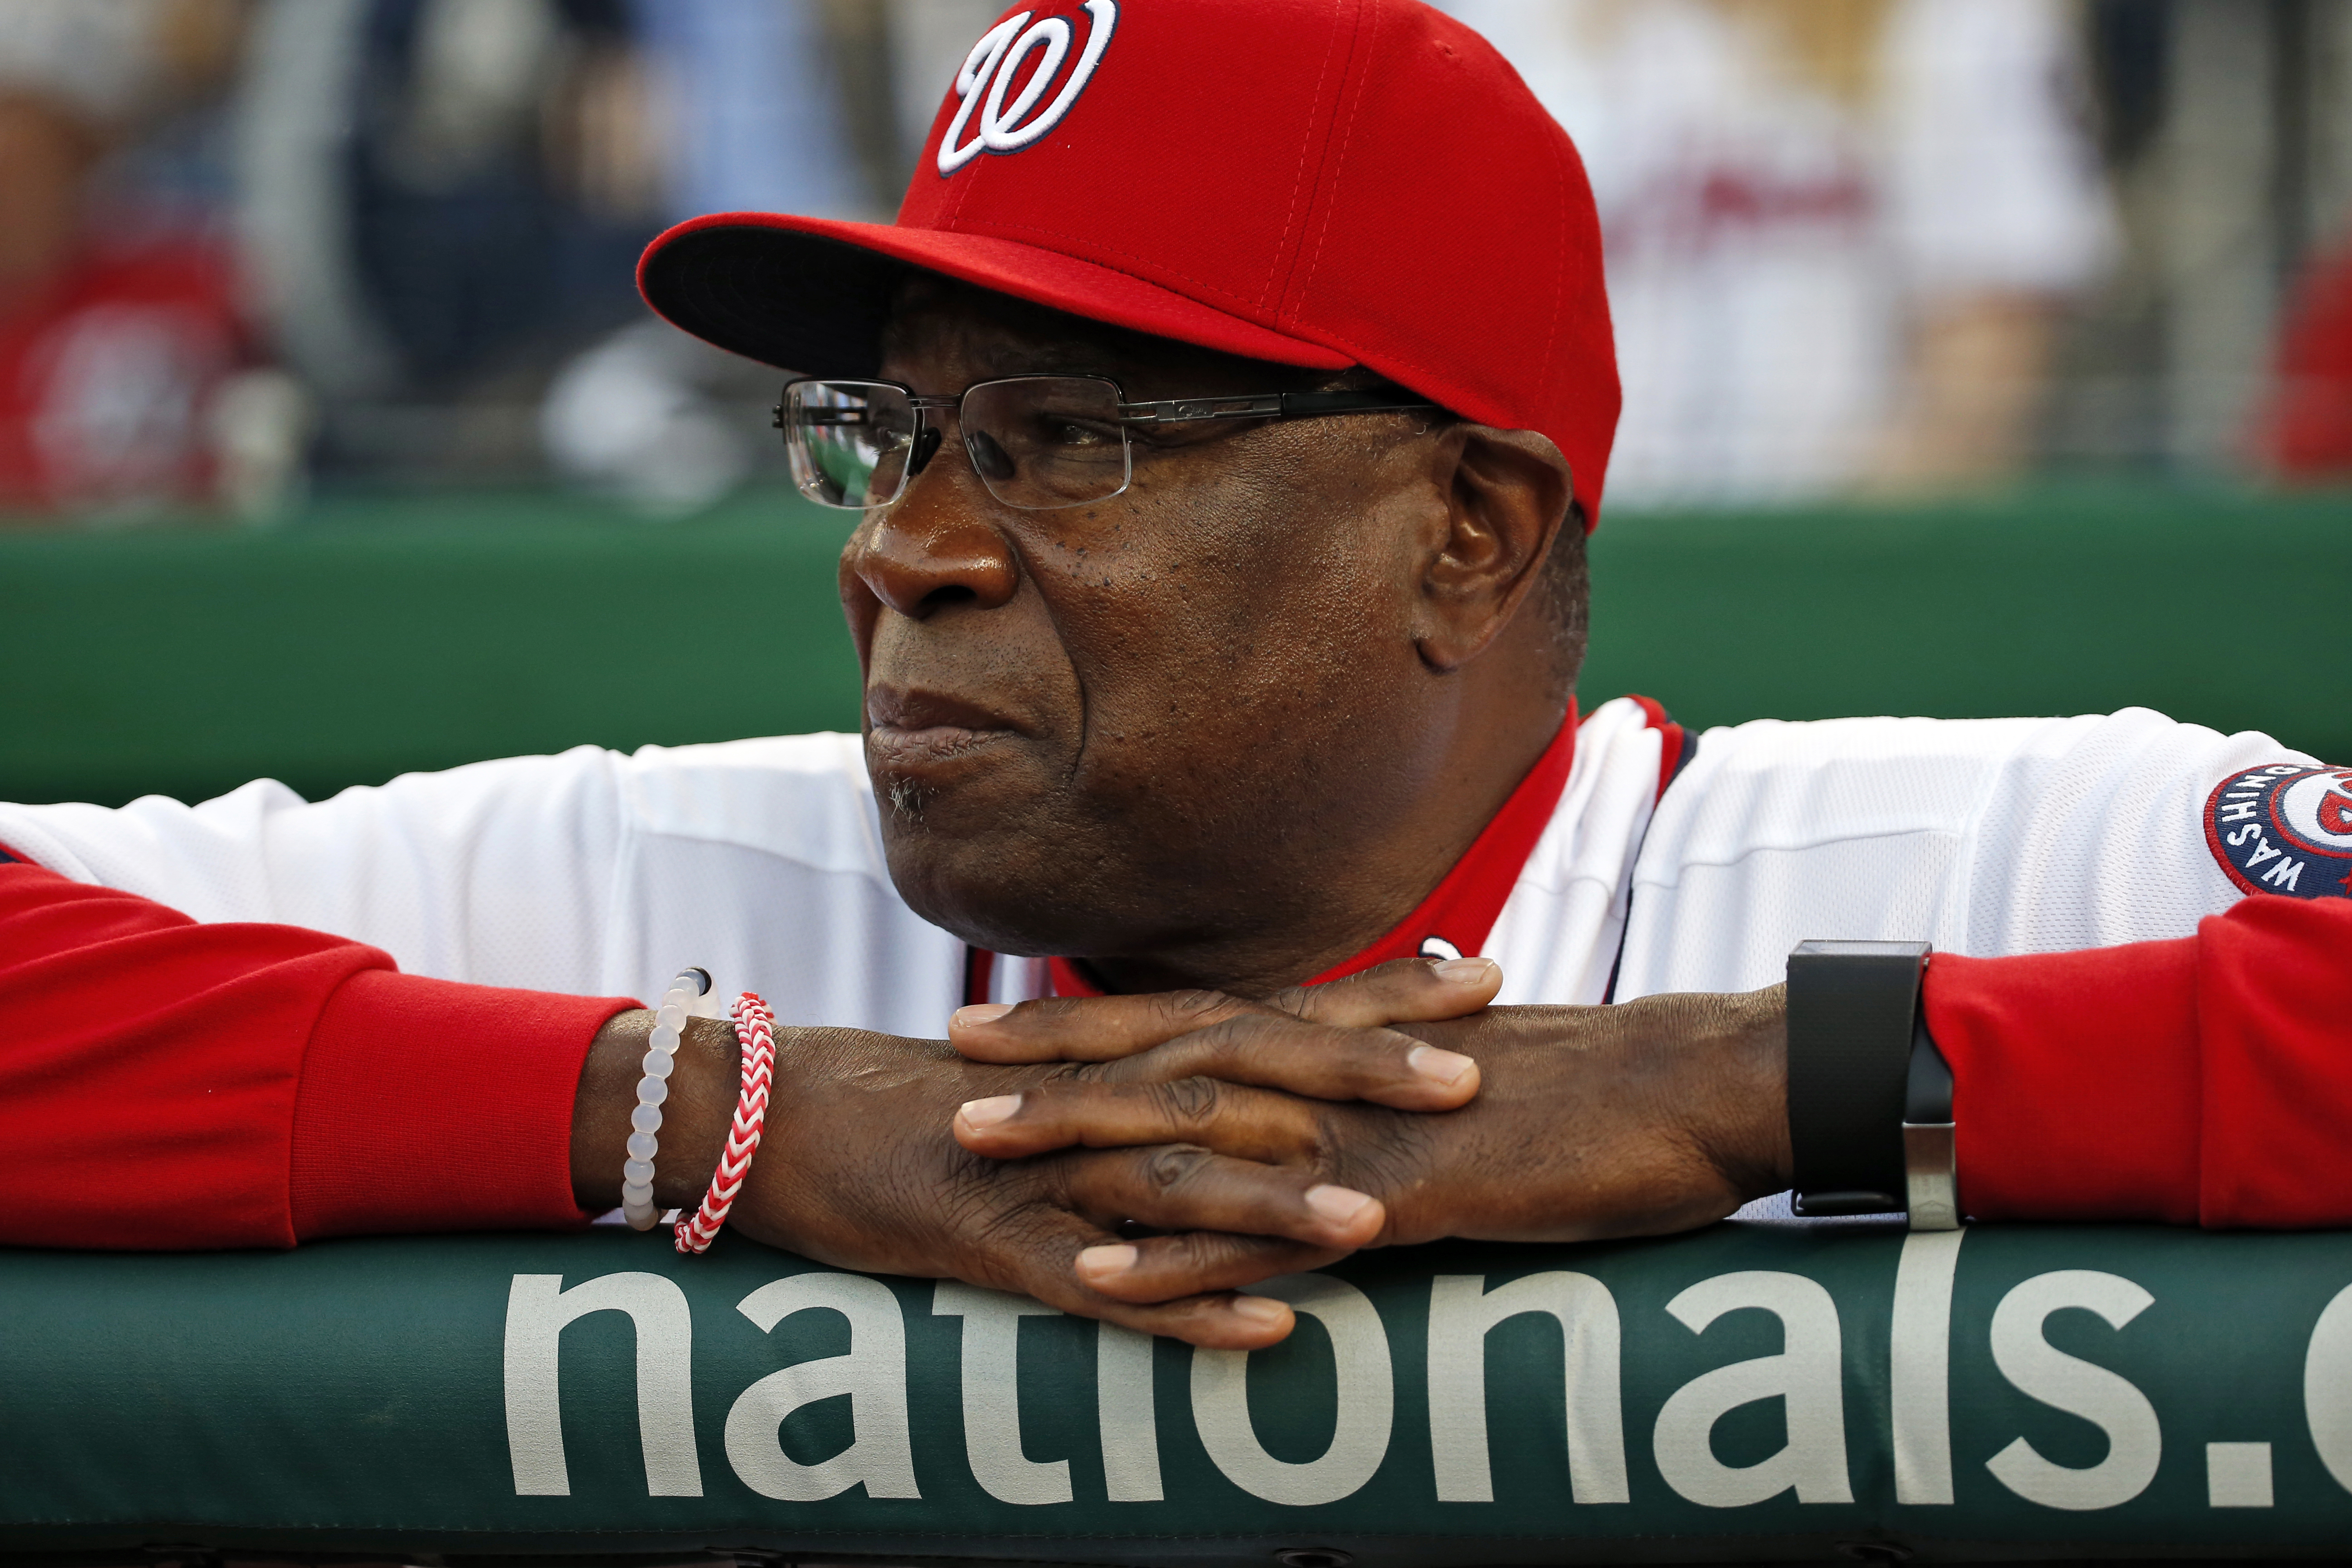 In this photo taken April 11, 2016, Washington Nationals manager Dusty Baker pauses before a baseball game against the Atlanta Braves at Nationals Park in Washington. Major League Baseball teams could do a better job hiring minority candidates for managin